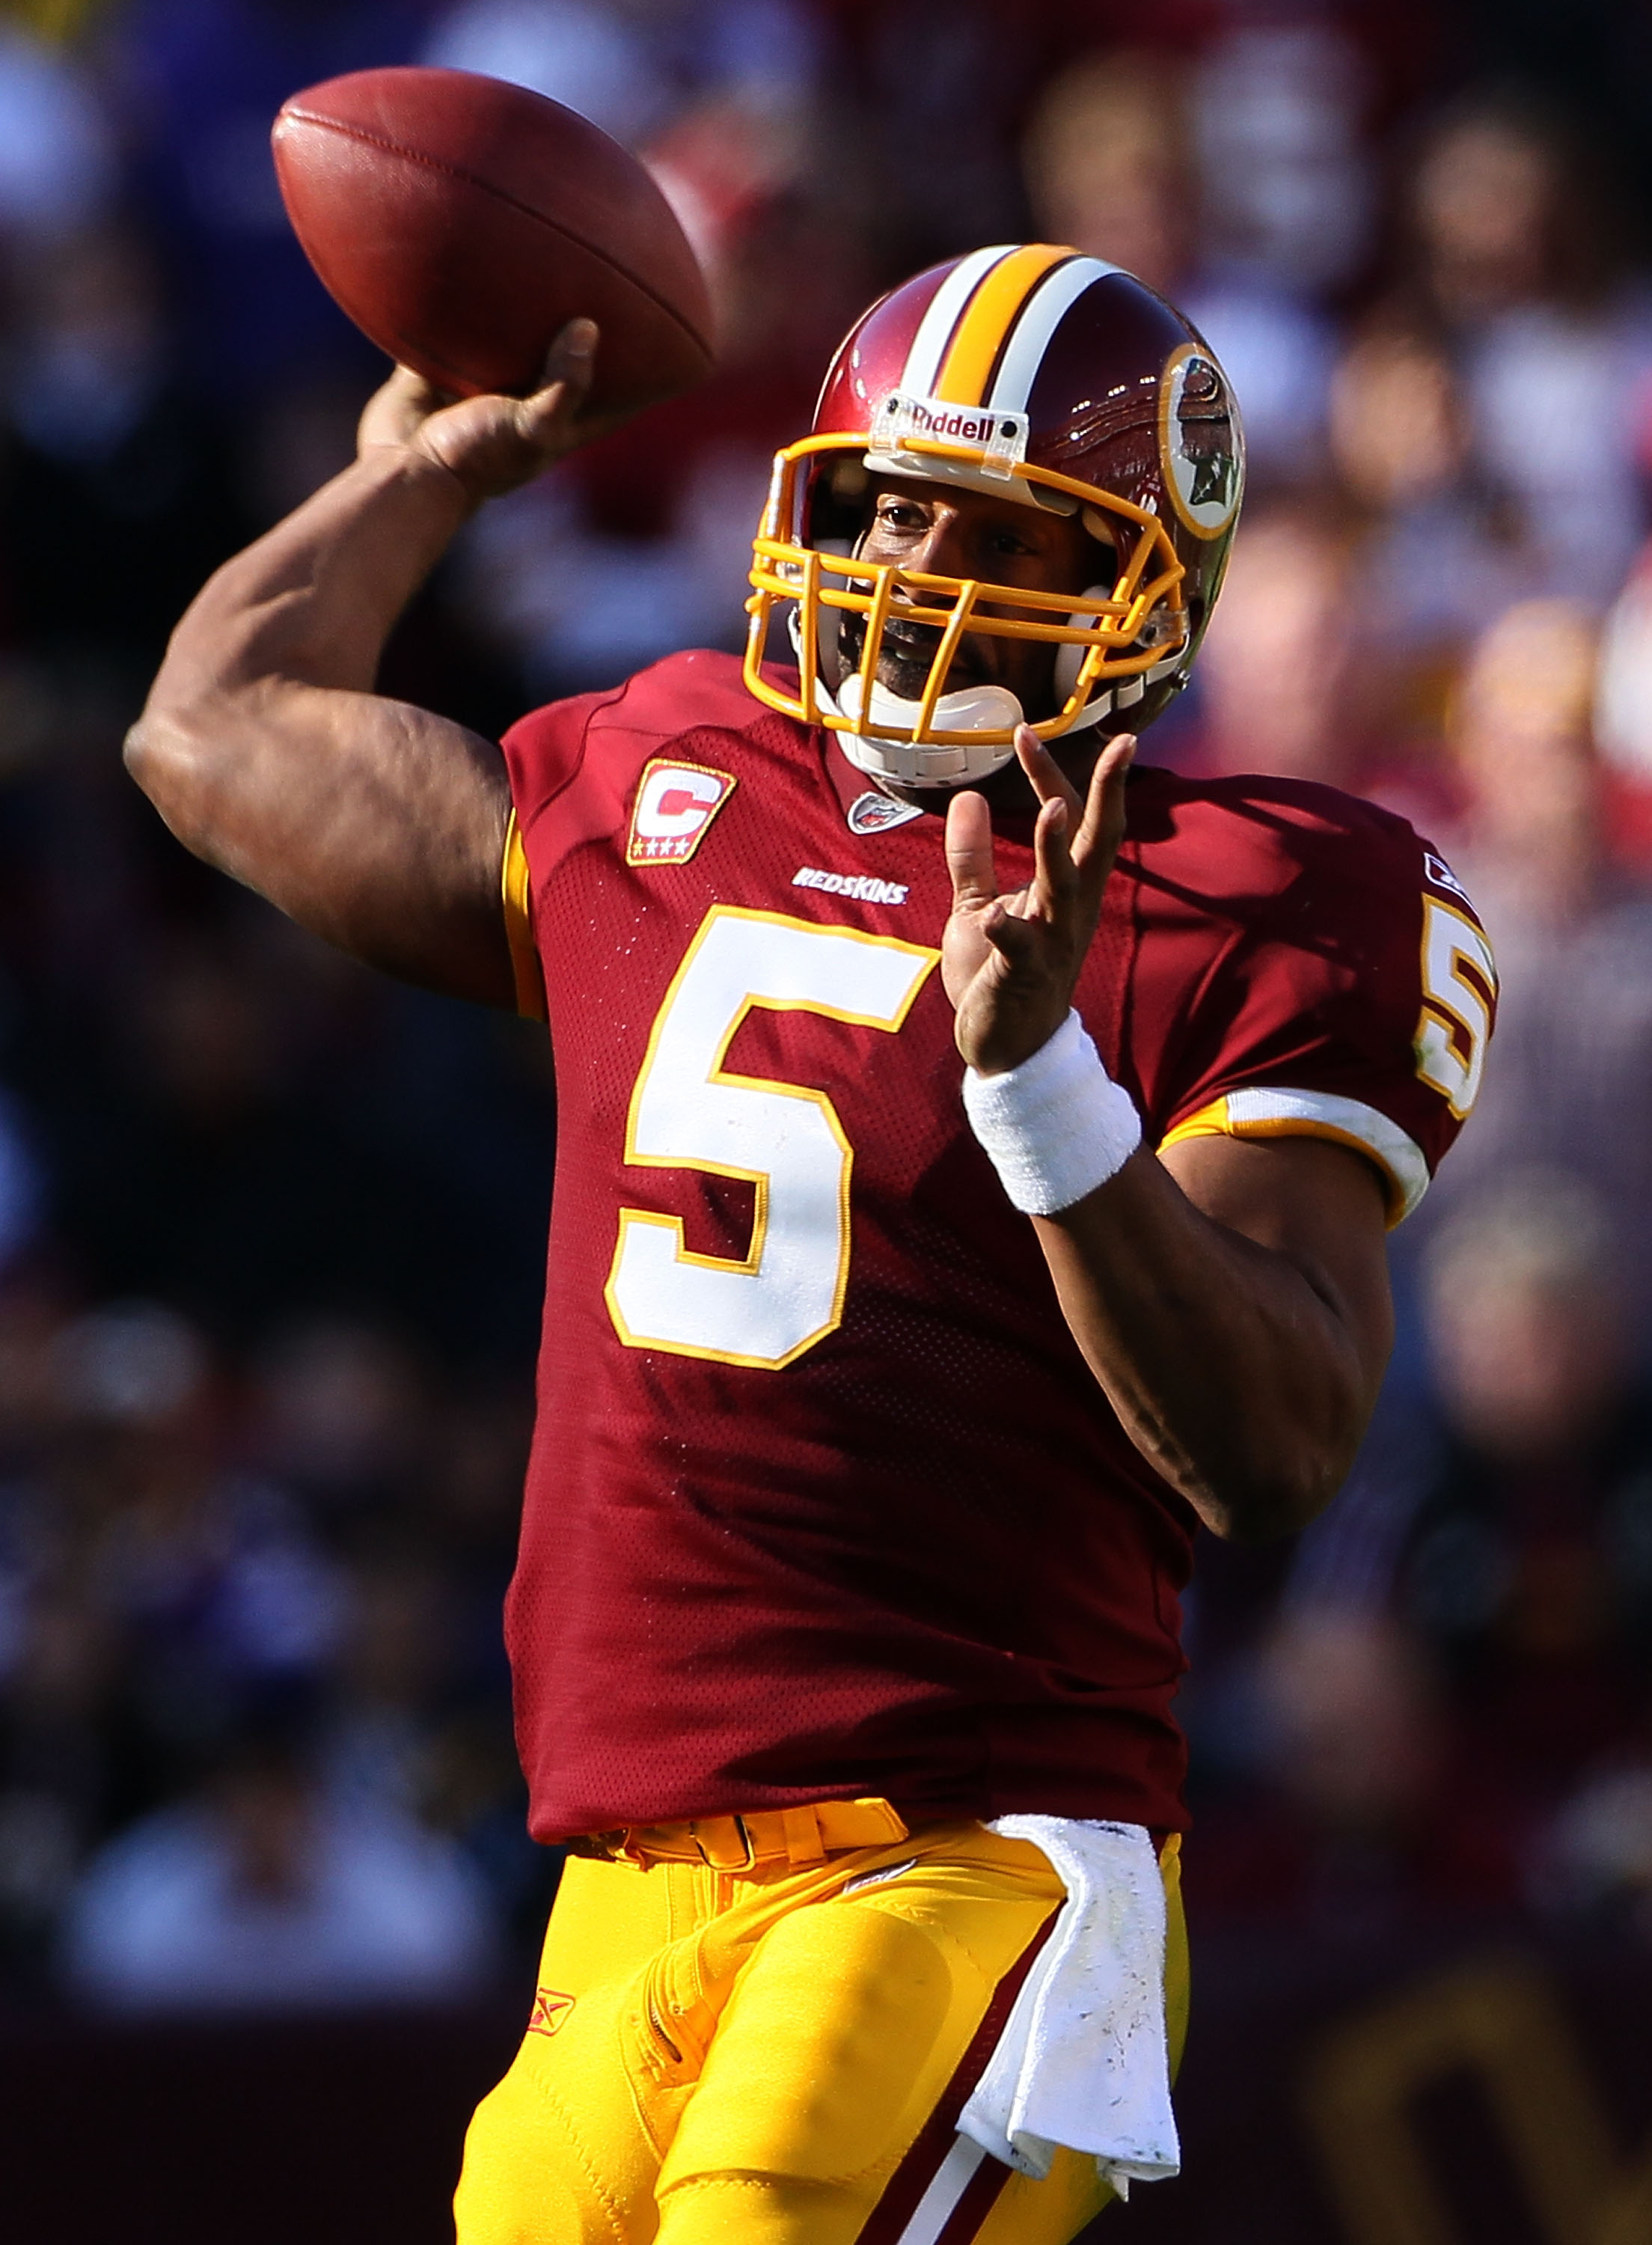 LANDOVER, MD - NOVEMBER 28:  Quarterback Donovan McNabb drops back to pass against the Minnesota Vikings at FedExField November 28, 2010 in Landover, Maryland. The Vikings won the game 17-13.  (Photo by Win McNamee/Getty Images)